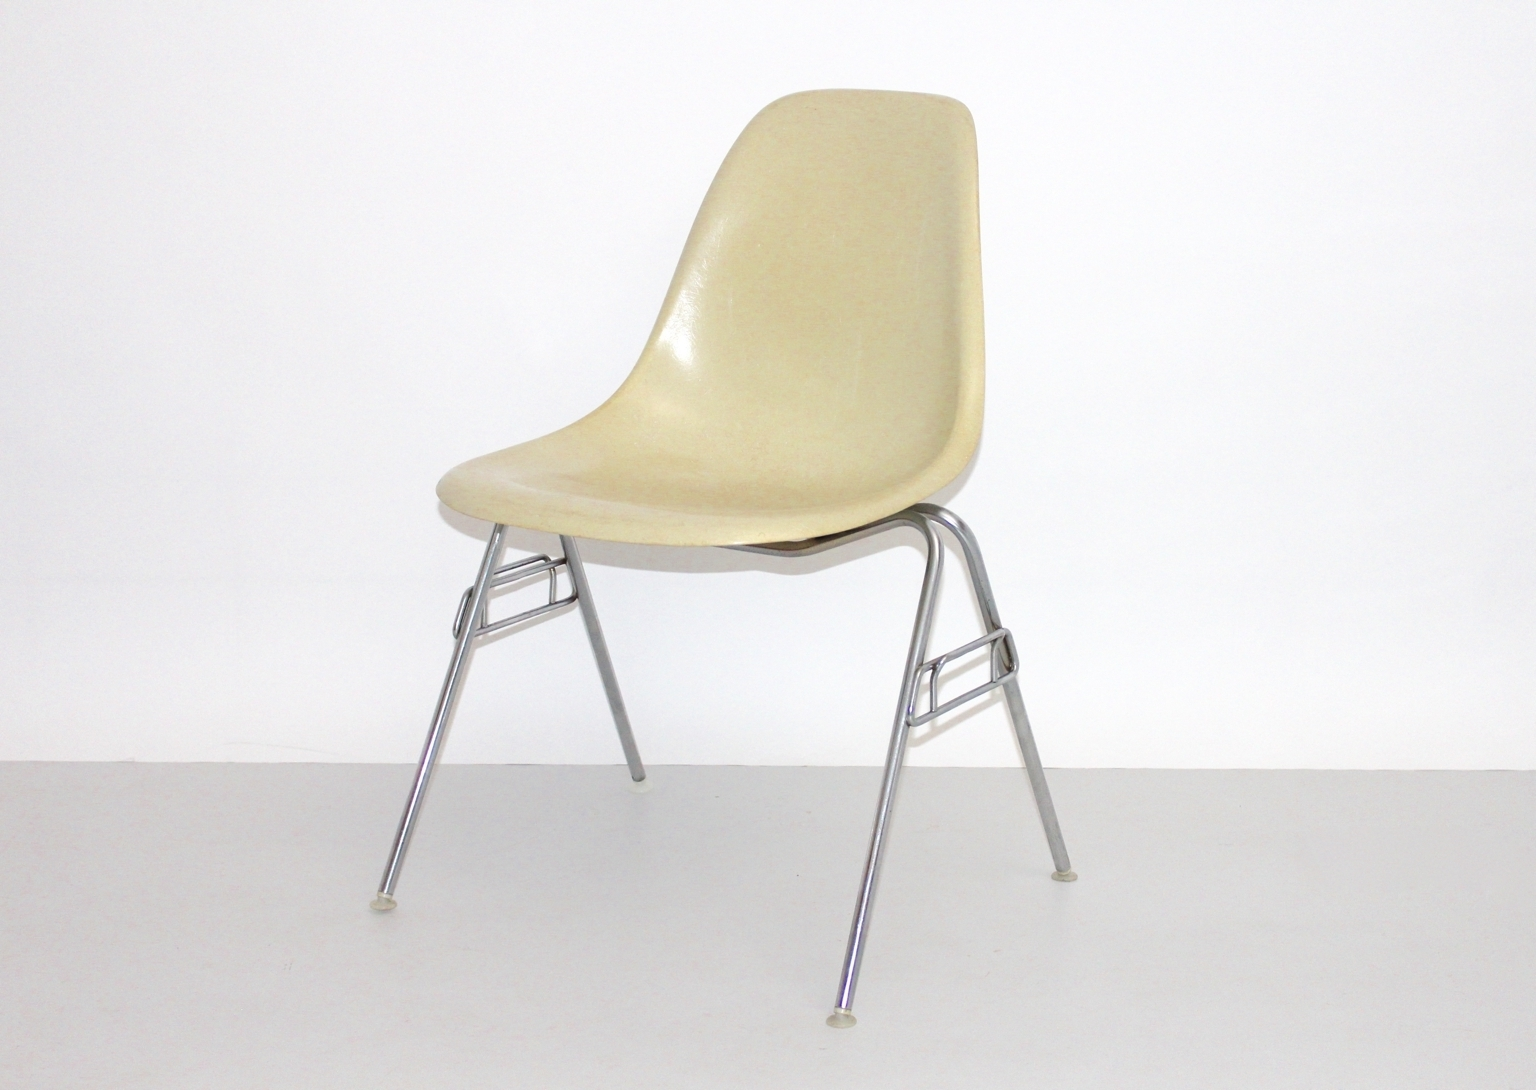 Vintage Model Dss N Fiberglass Chairray & Charles Eames For Within 2018 Eames Chaises (View 13 of 15)